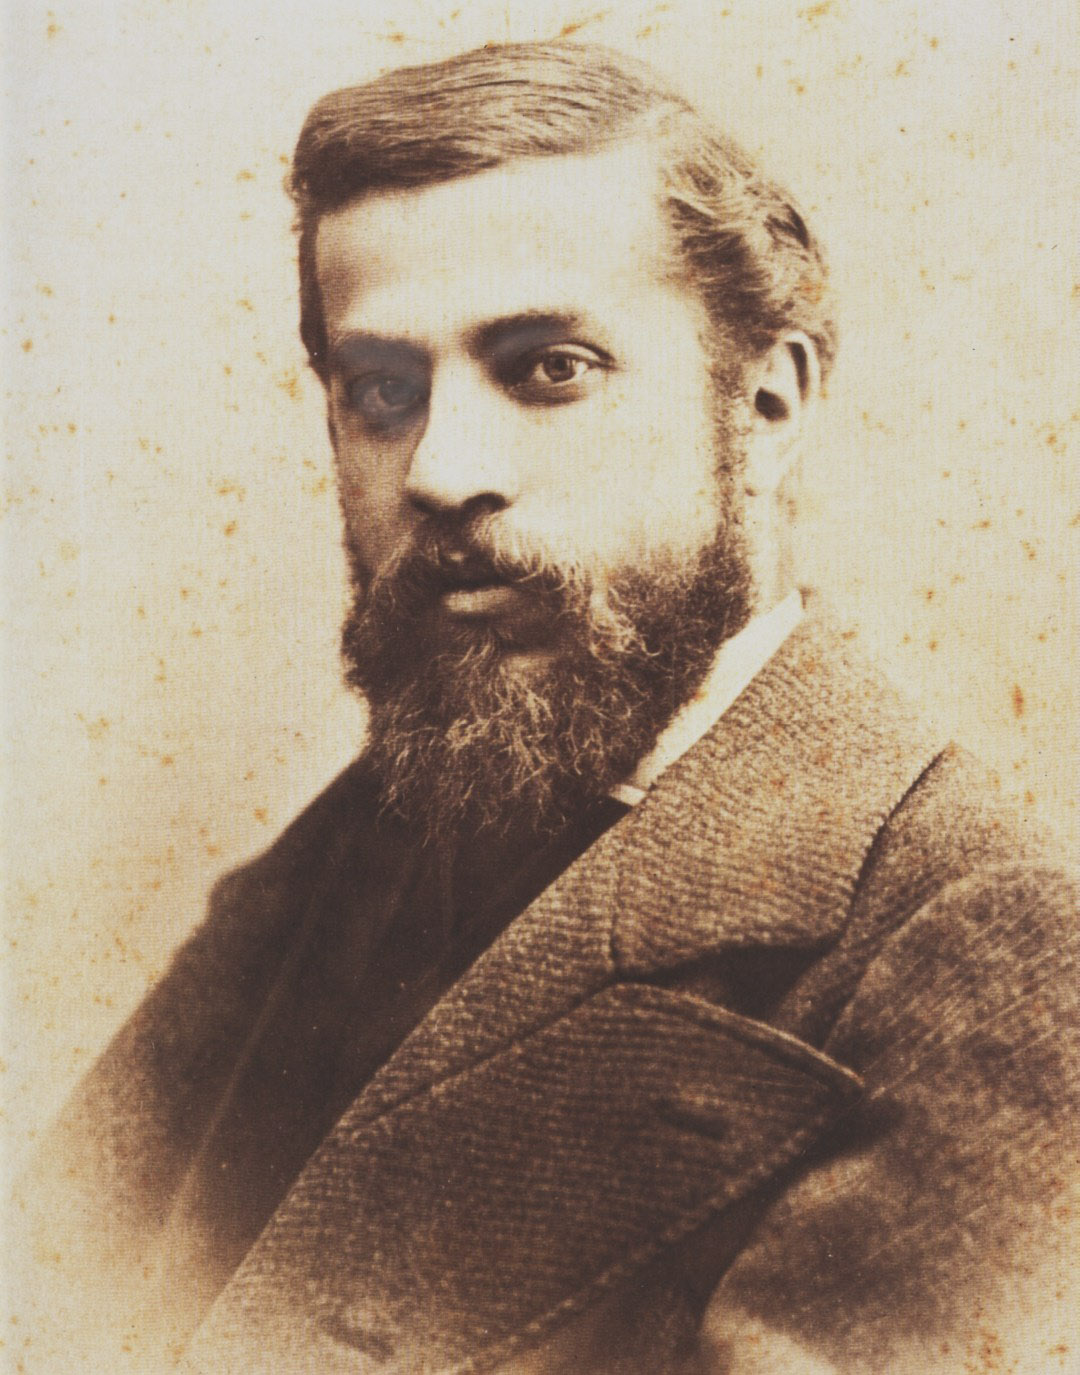 Antonio Gaudí (Creative Commons).